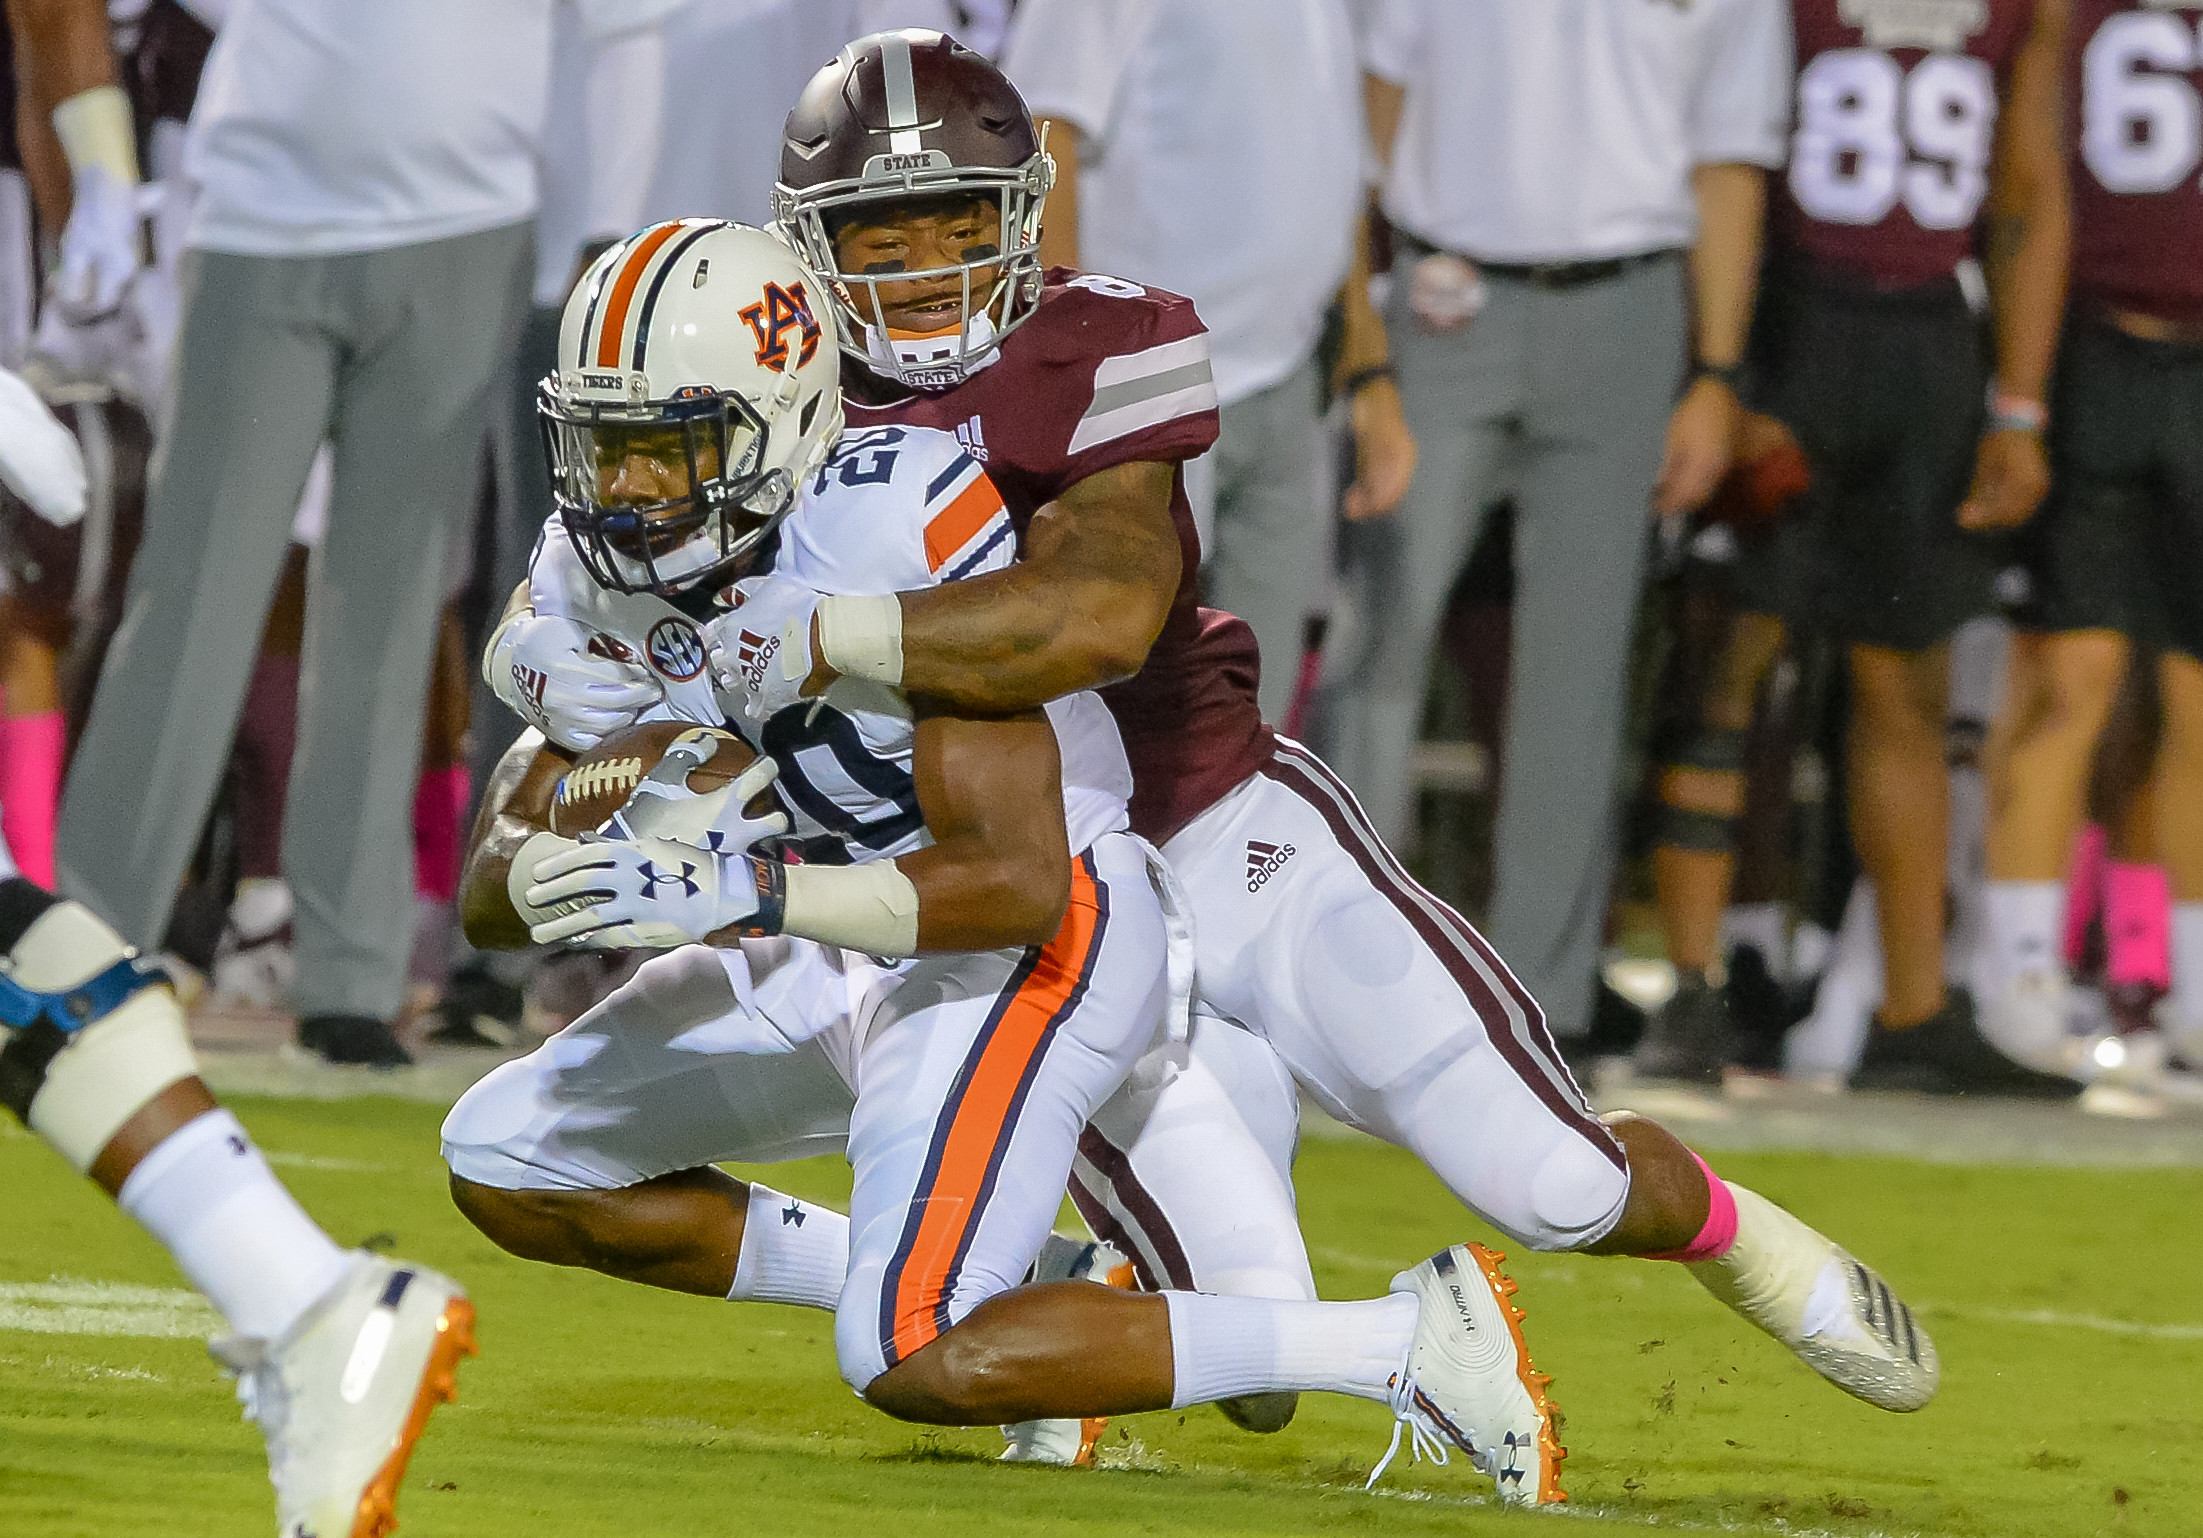 Auburn Tigers defensive back Jeremiah Dinson (20) is brought by Mississippi State Bulldogs running back Kylin Hill (8) after intercepting a pass during the first half of Saturday's game, at Davis Wade Stadium in Starkville, MS. Daily Mountain Eagle -  Jeff Johnsey